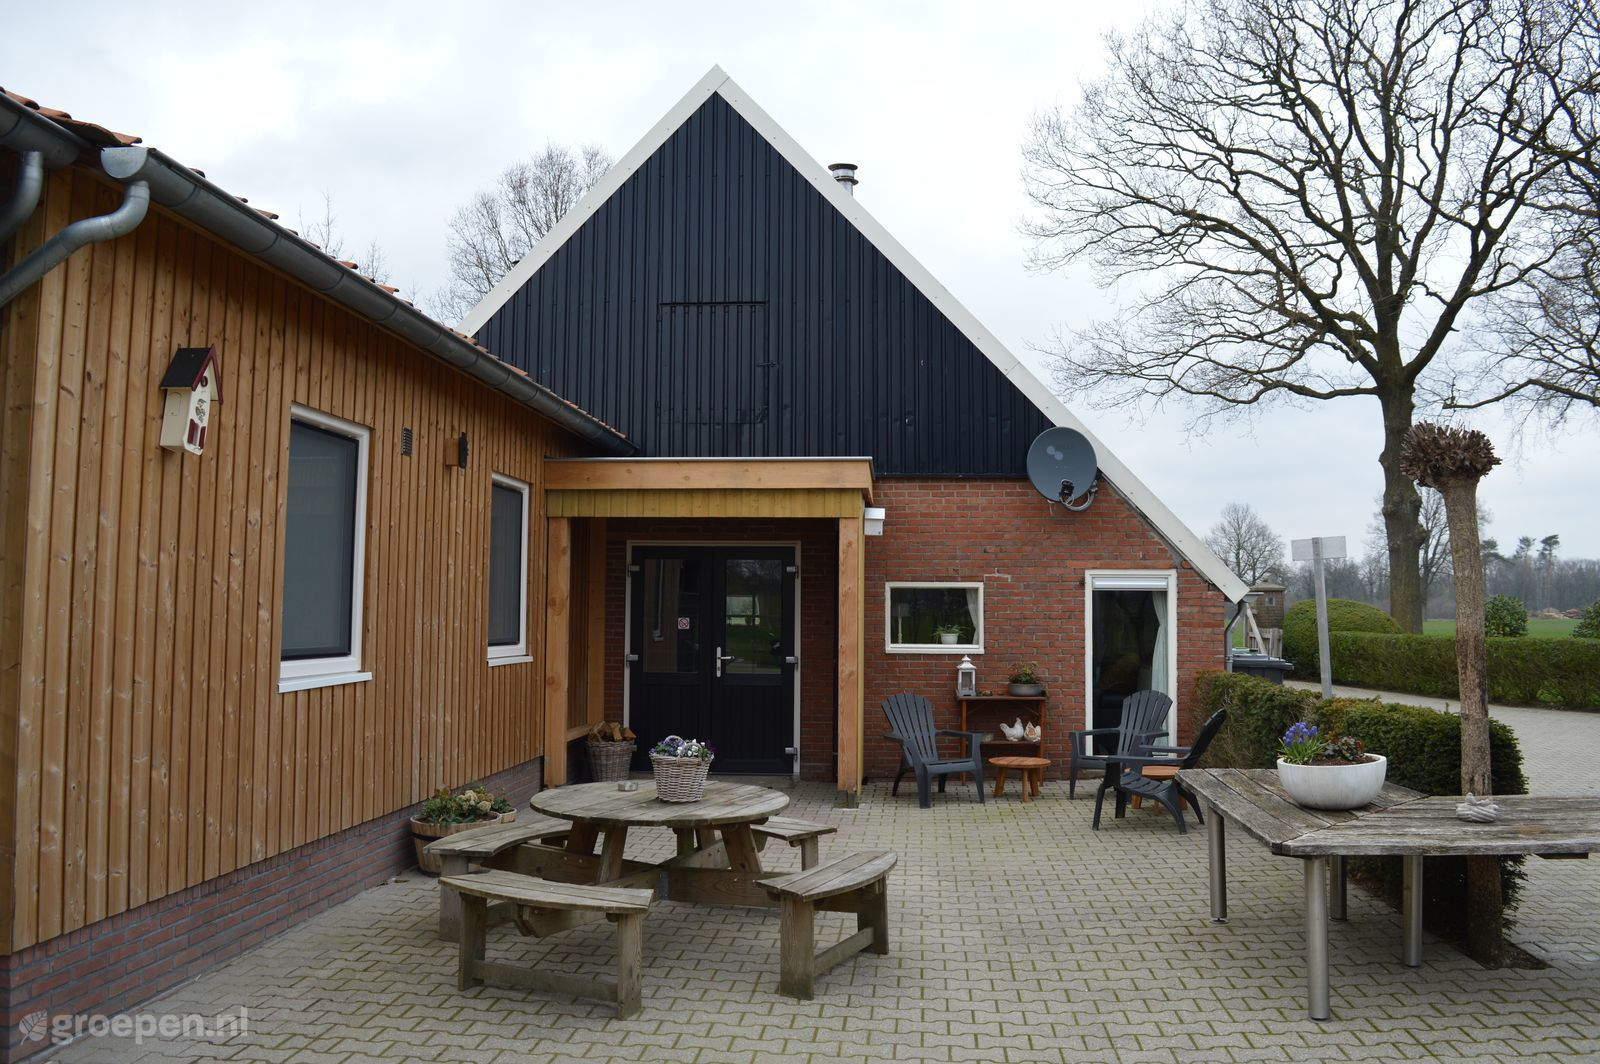 Group accommodation Rekken